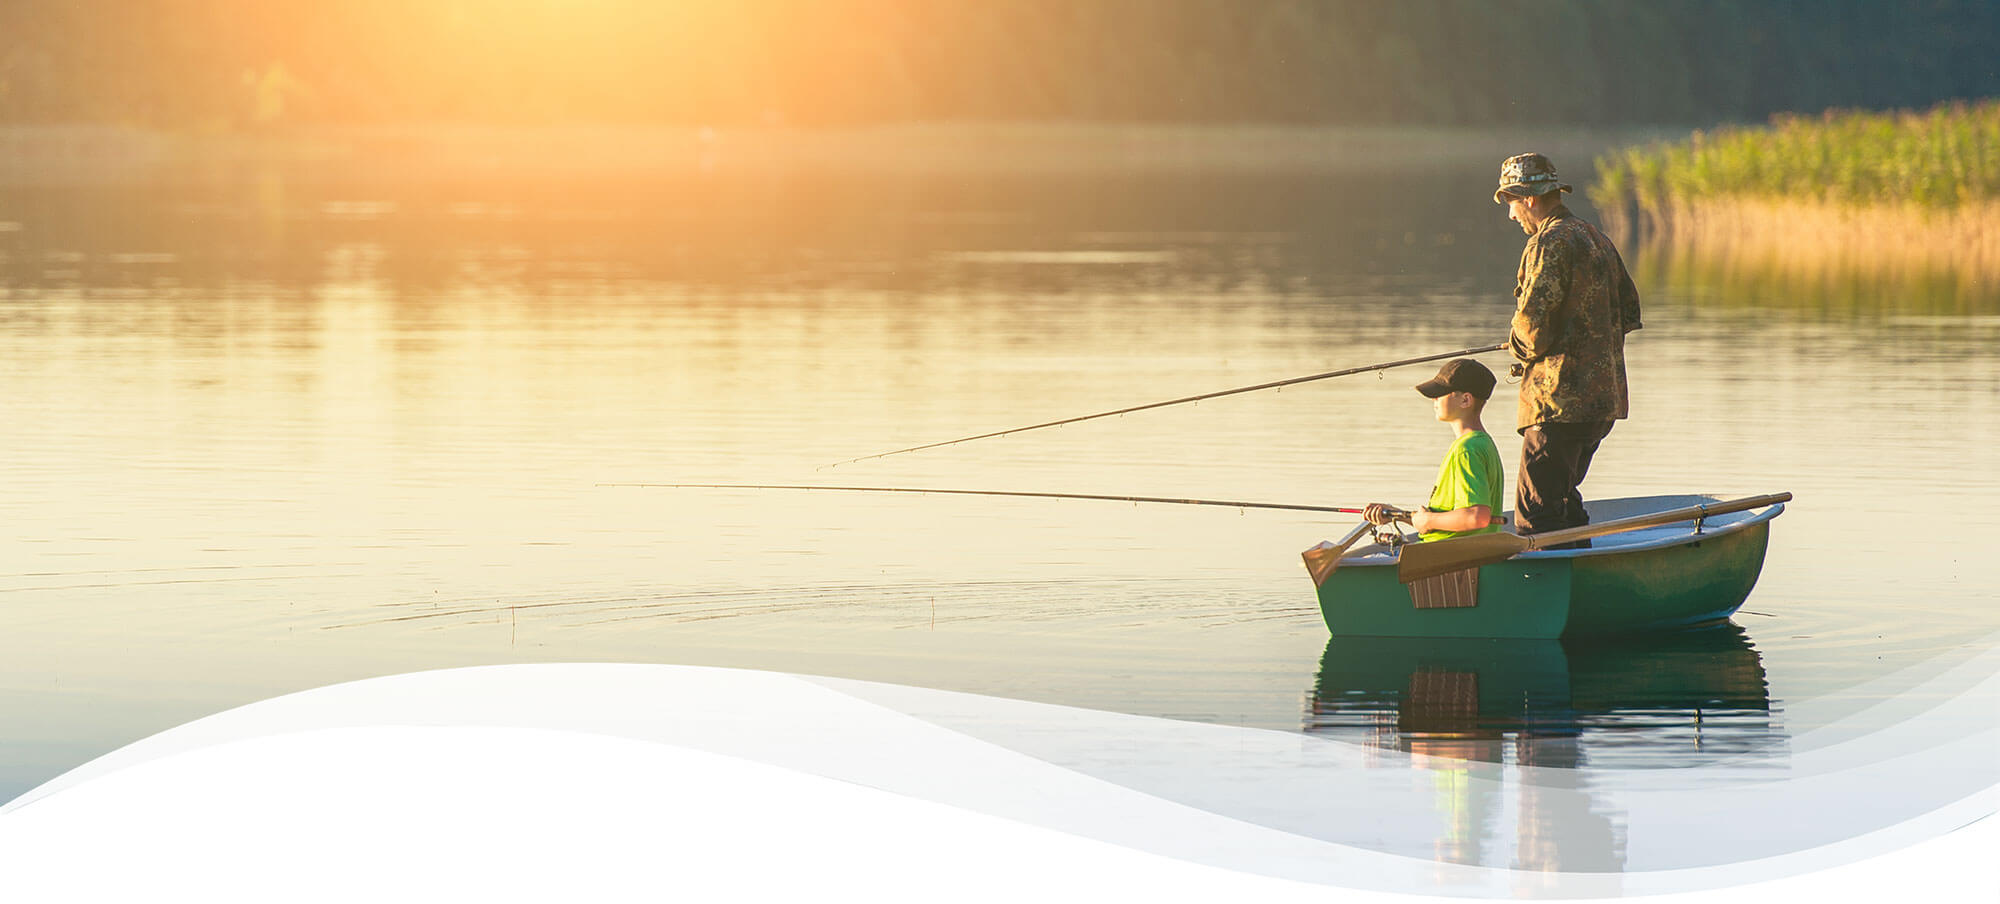 Father and son fishing in a small green row boat at sunrise